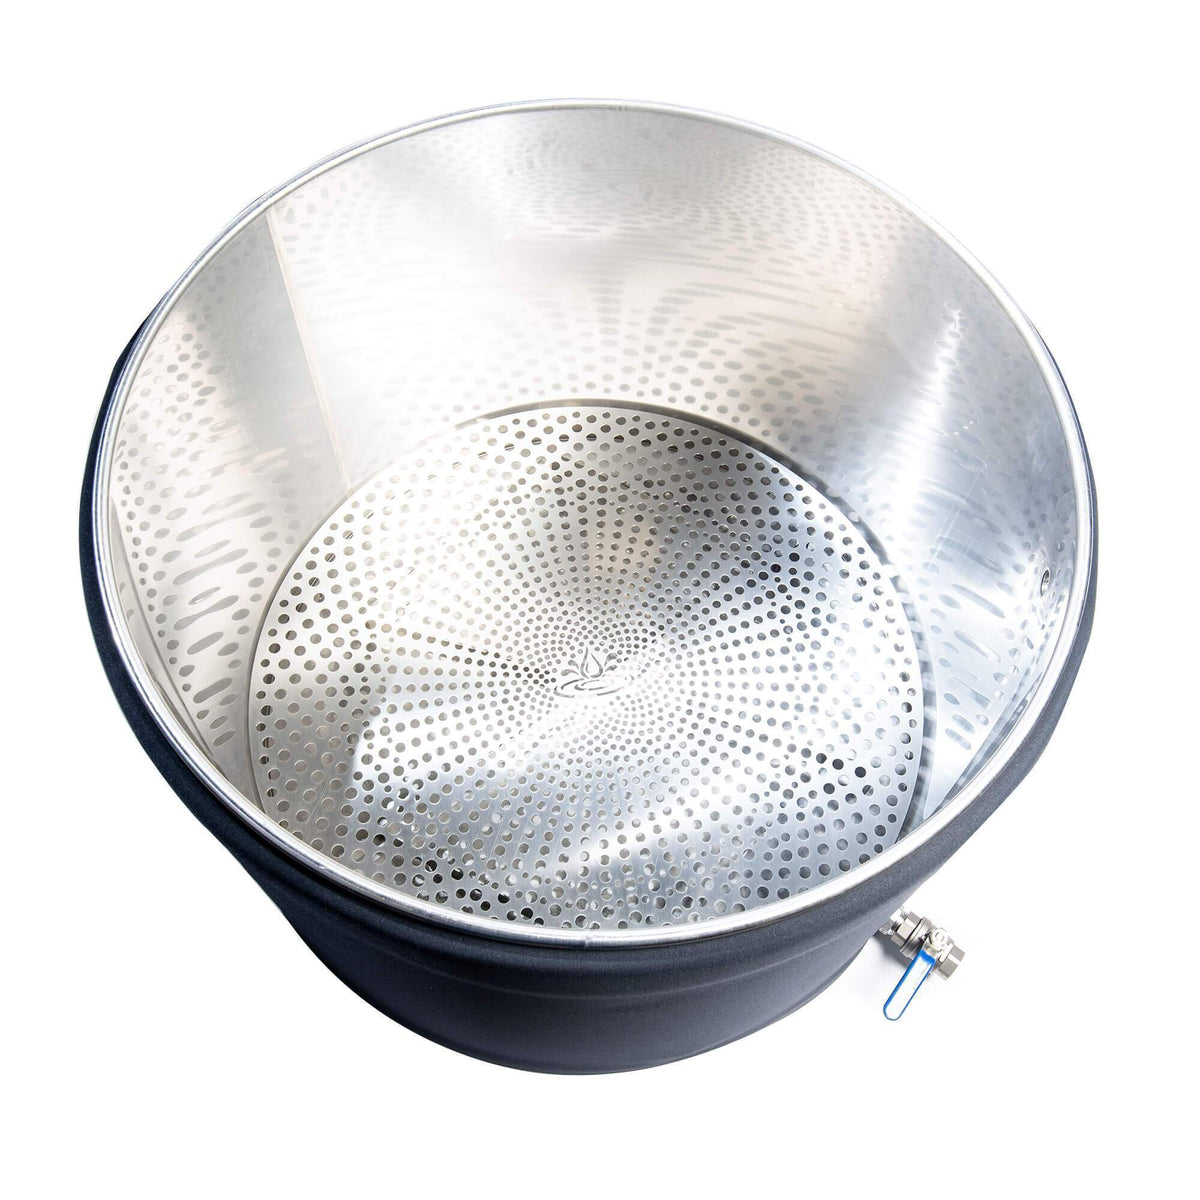 Pure Pressure Bruteless Stainless Steel Bubble Hash Washing Vessels